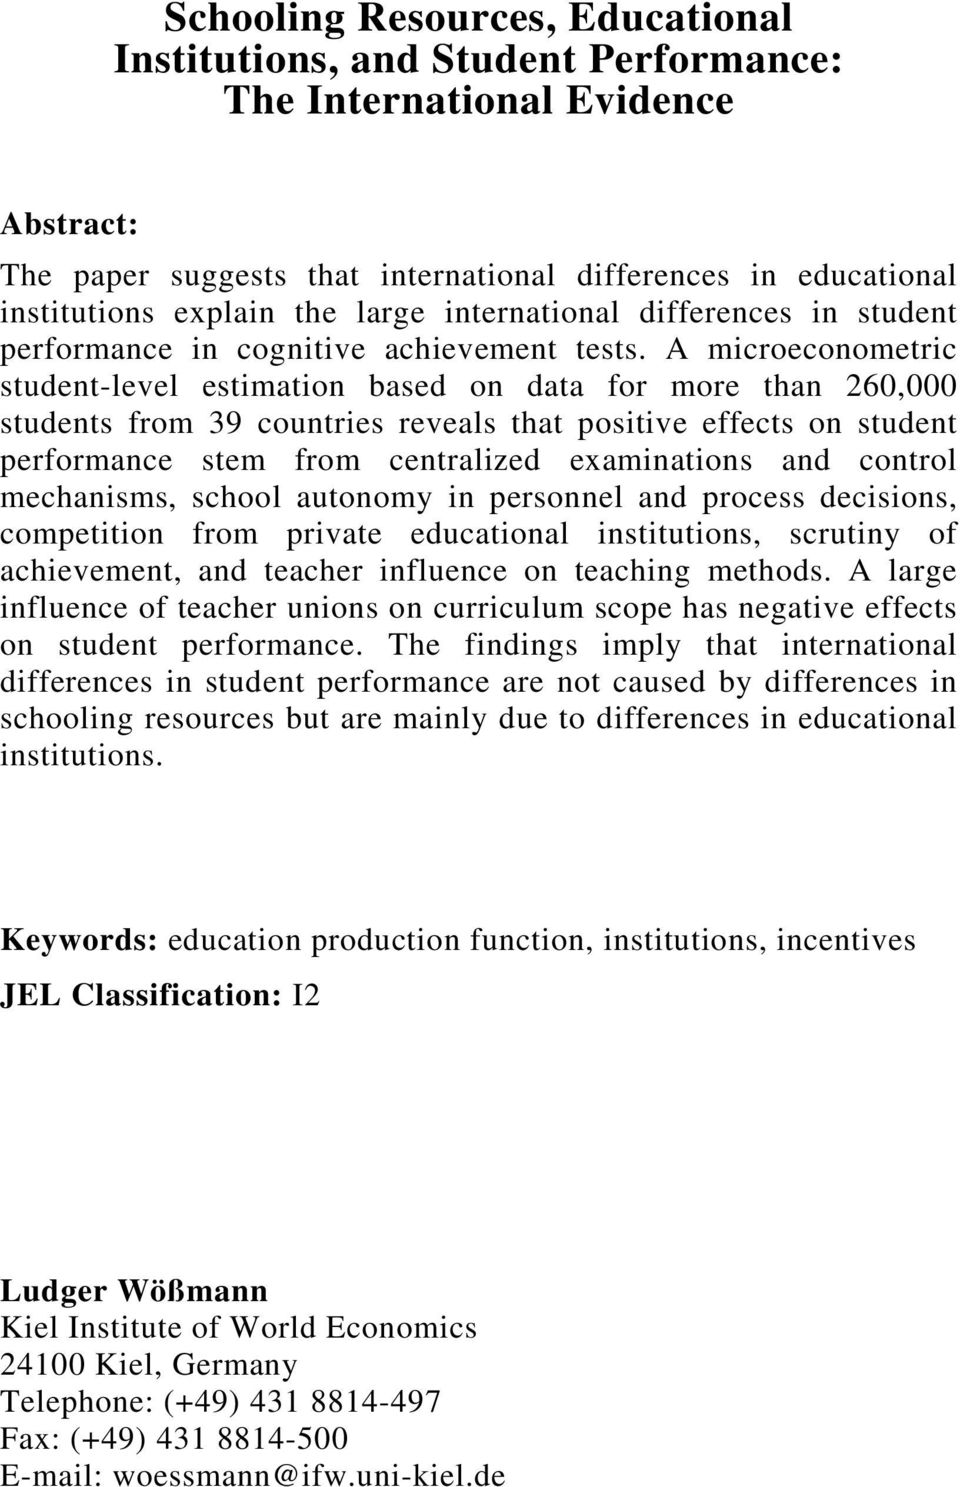 A microeconometric student-level estimation based on data for more than 260,000 students from 39 countries reveals that positive effects on student performance stem from centralized examinations and